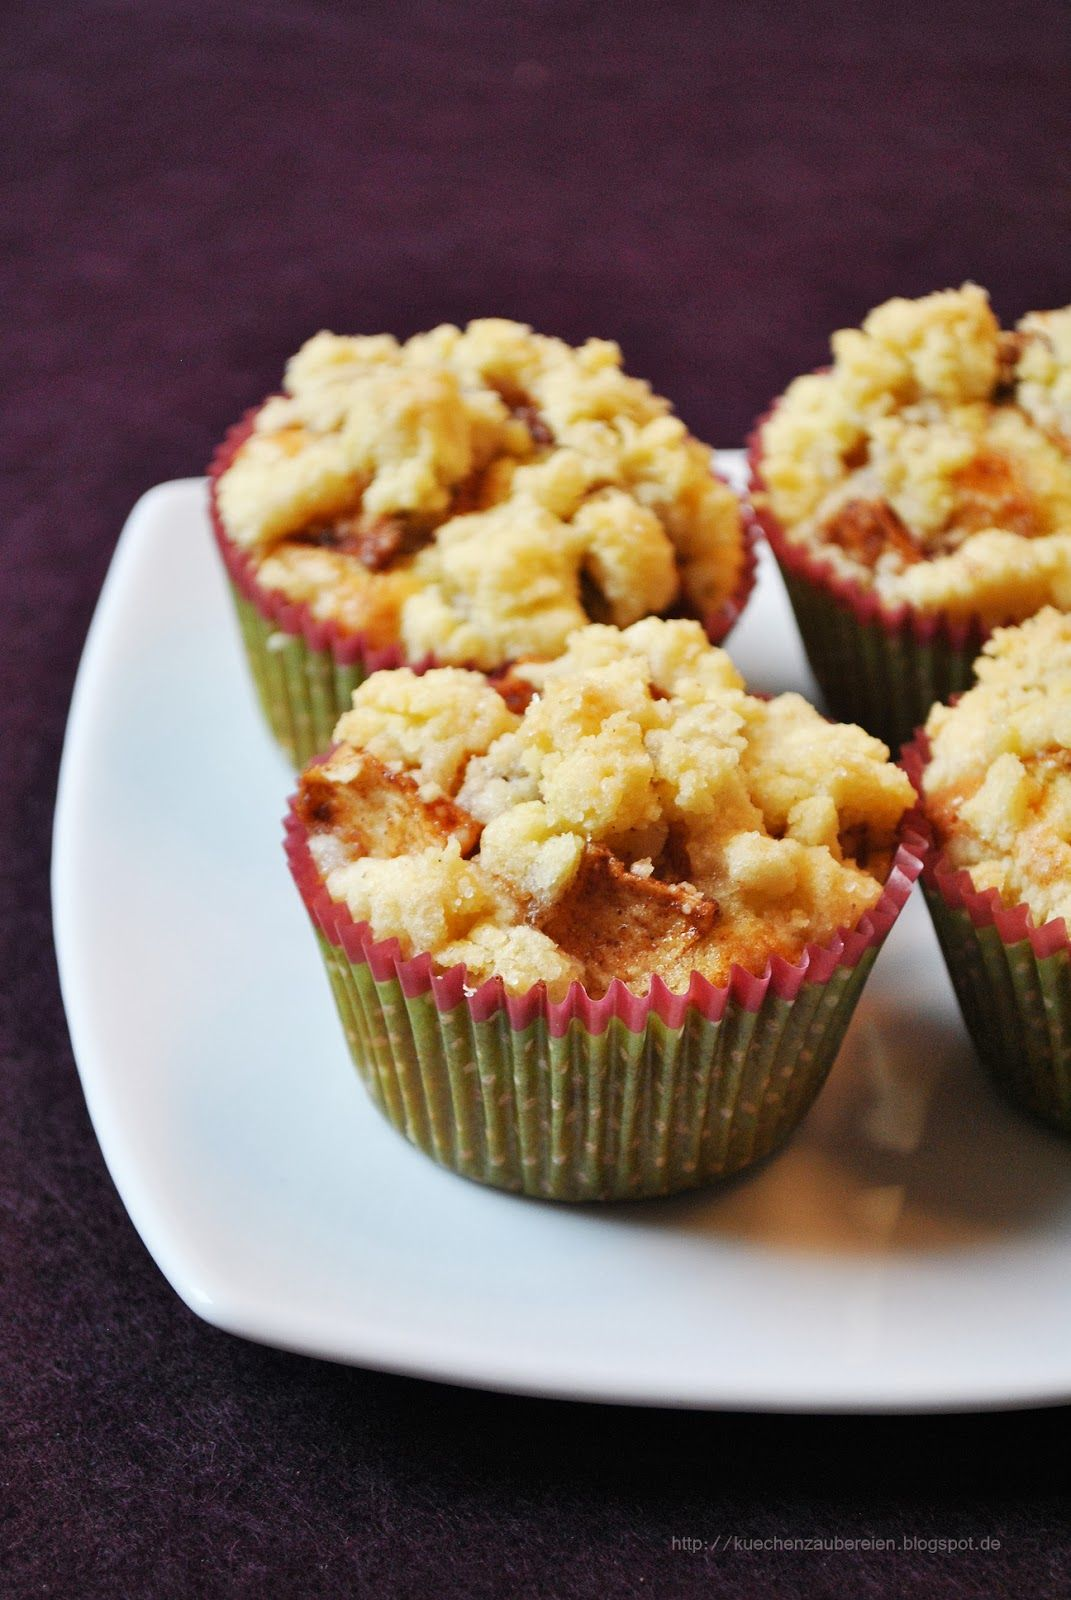 Apfel-Streusel-Muffins mit Marzipan